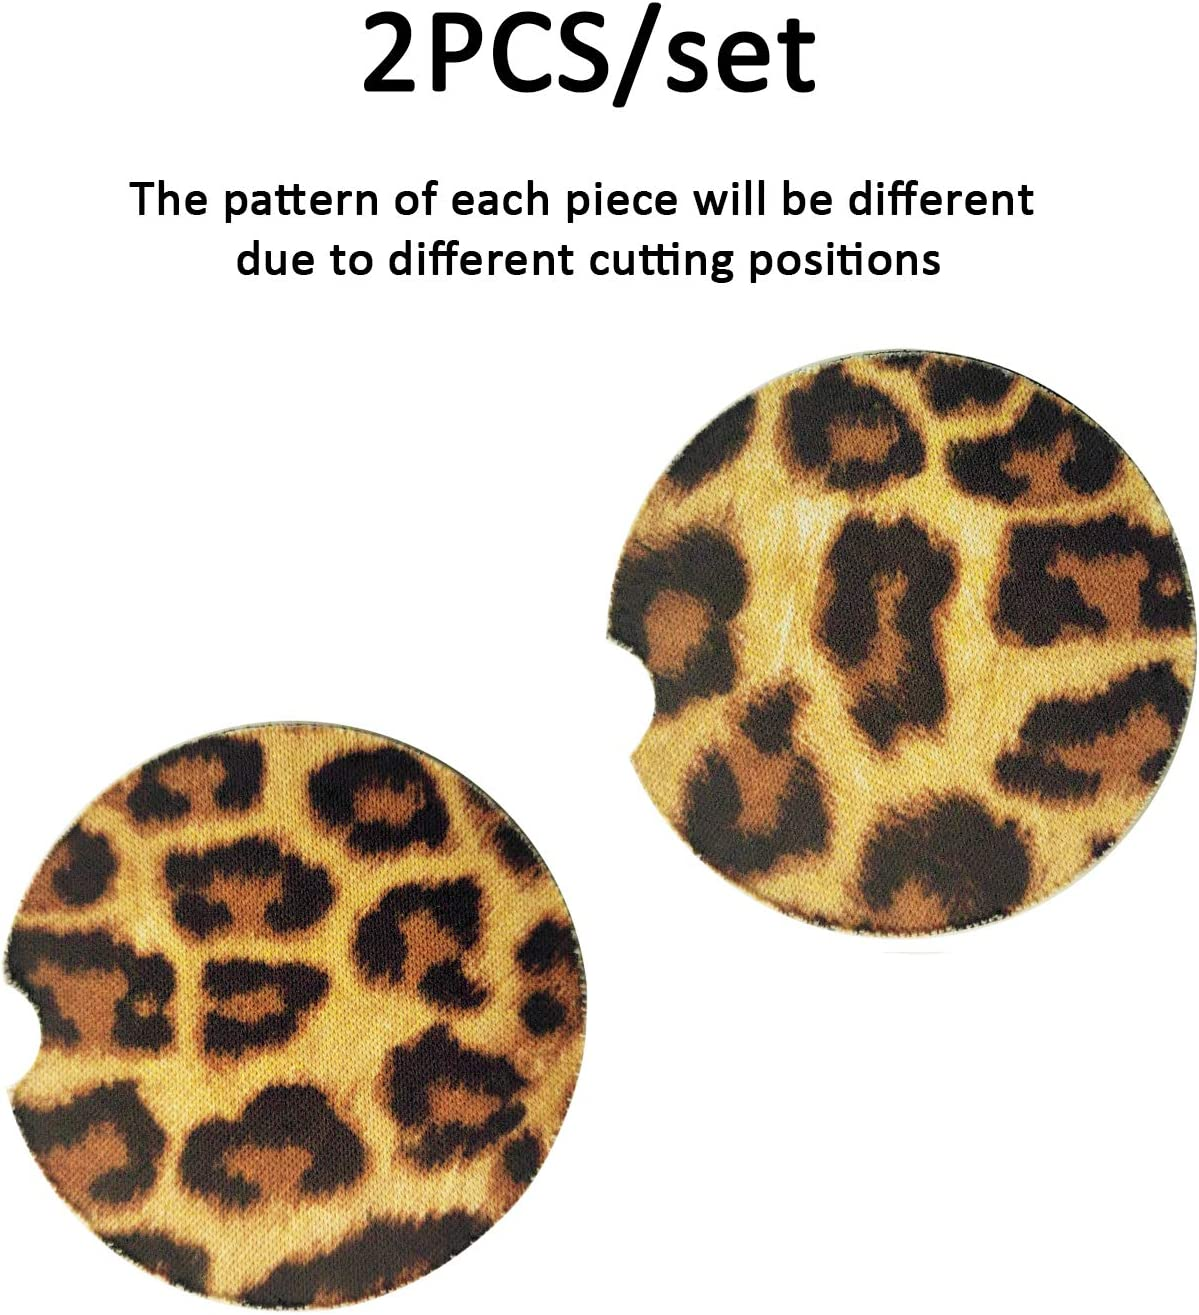 Auovo 2.7 Car Cup Holder Coaster Inserts Leopard Print Neoprene Universal Fit Automotive Interior Accessories Cup Coasters Pad Mat for Living Room Kitchen Office 4-PC Kit